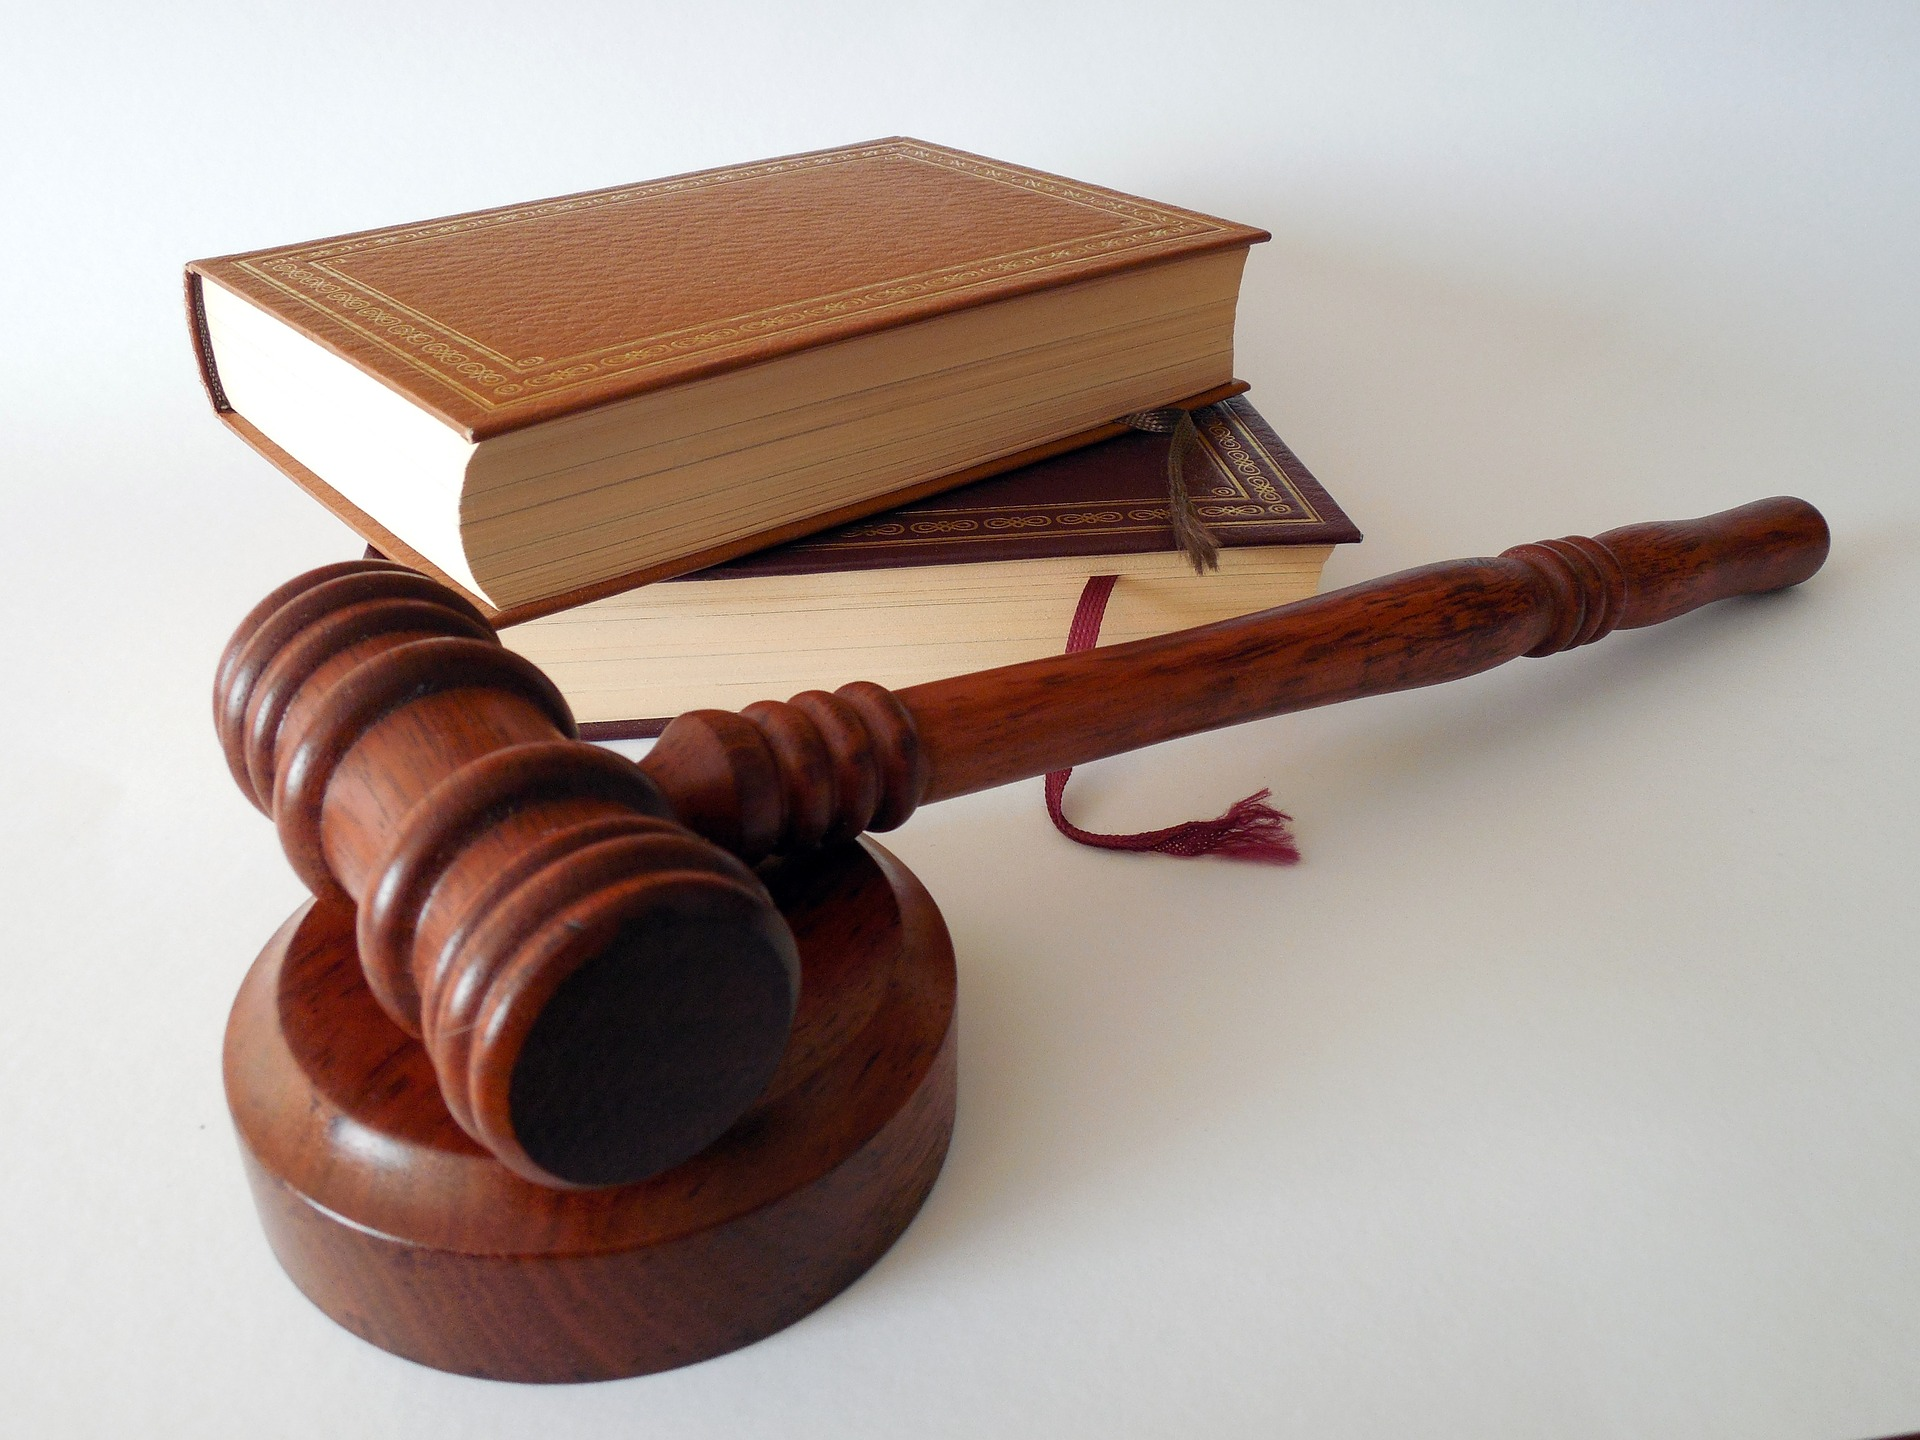 best criminal trial attorney, what do i do if the police wants to search my car